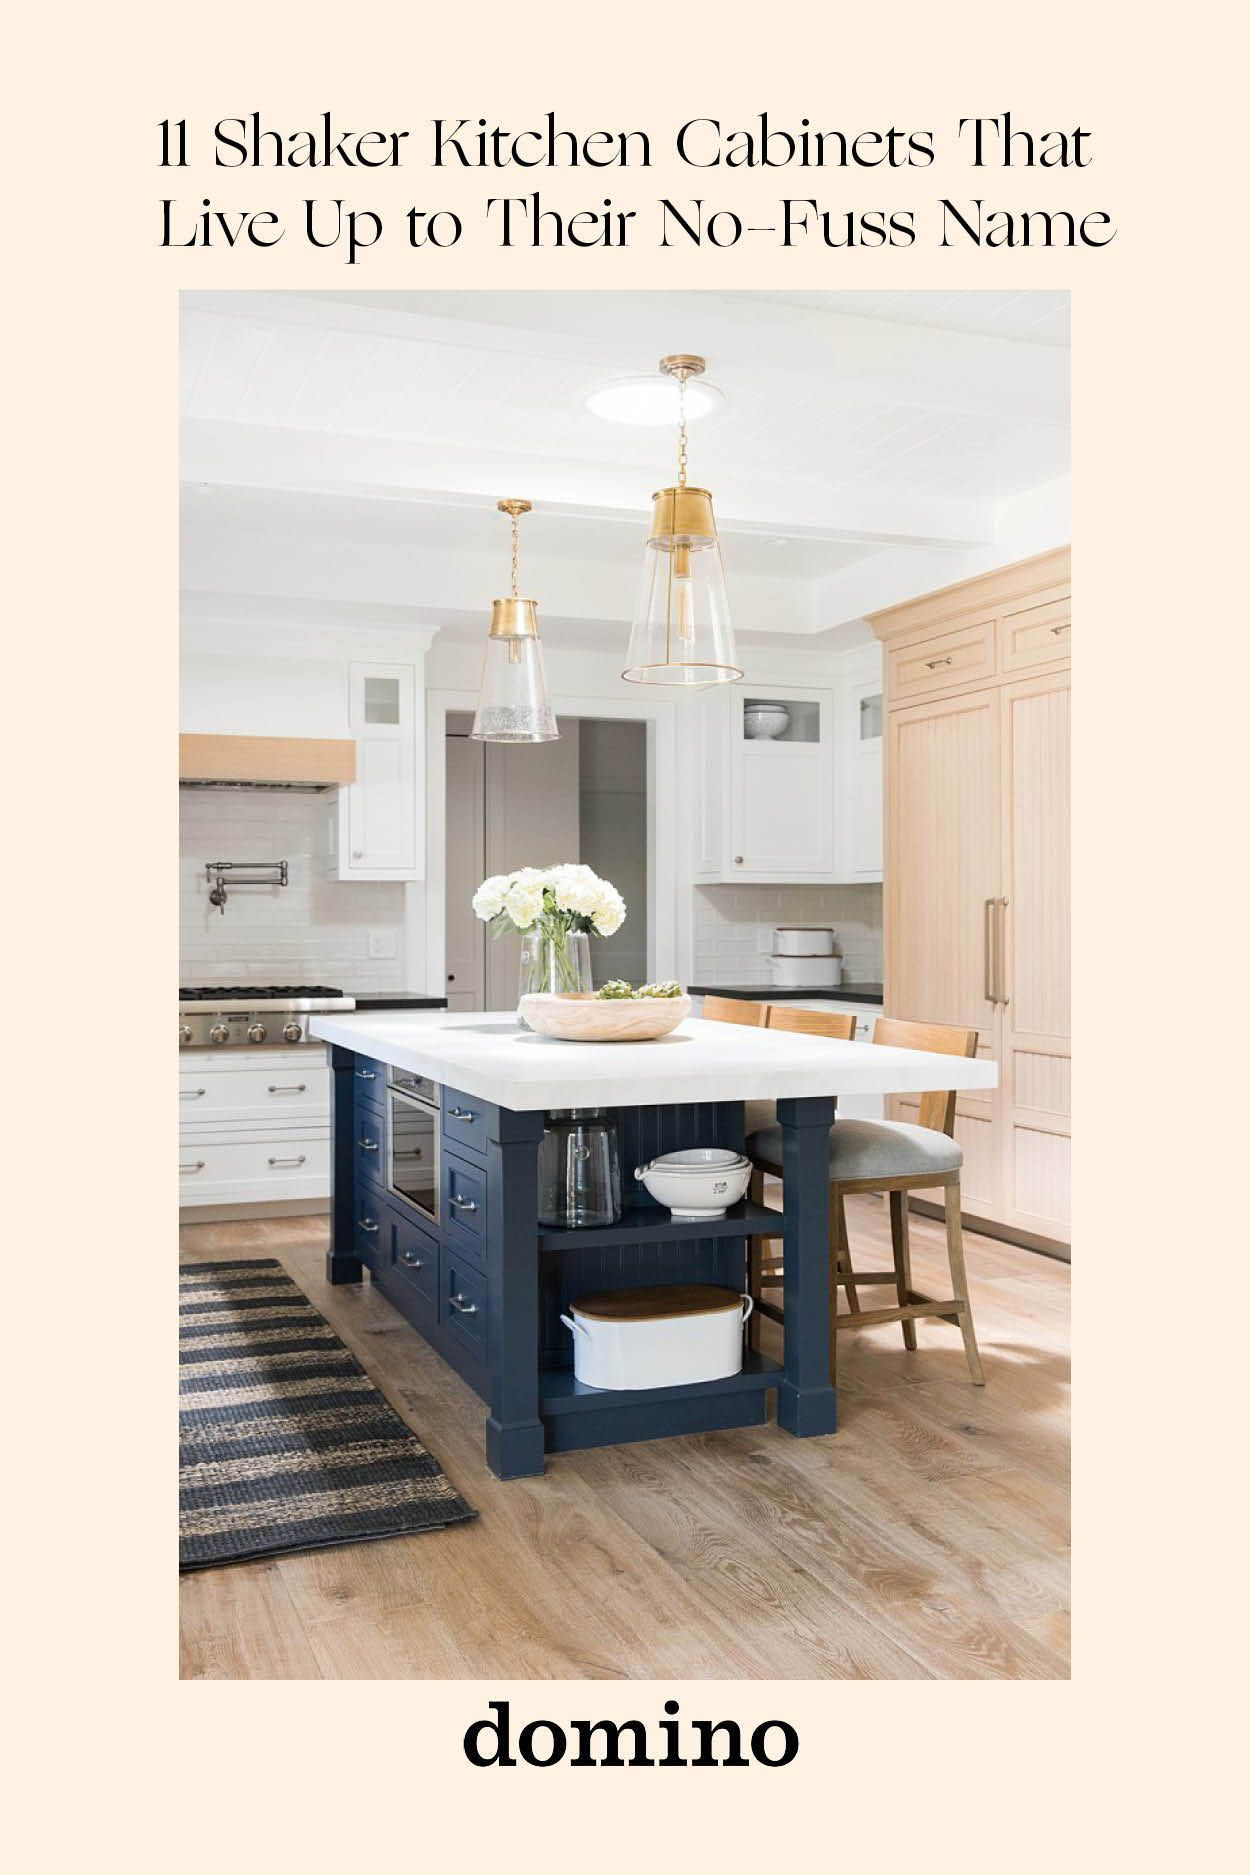 11 Shaker Kitchen Cabinet Ideas That Put a Twist on the ...